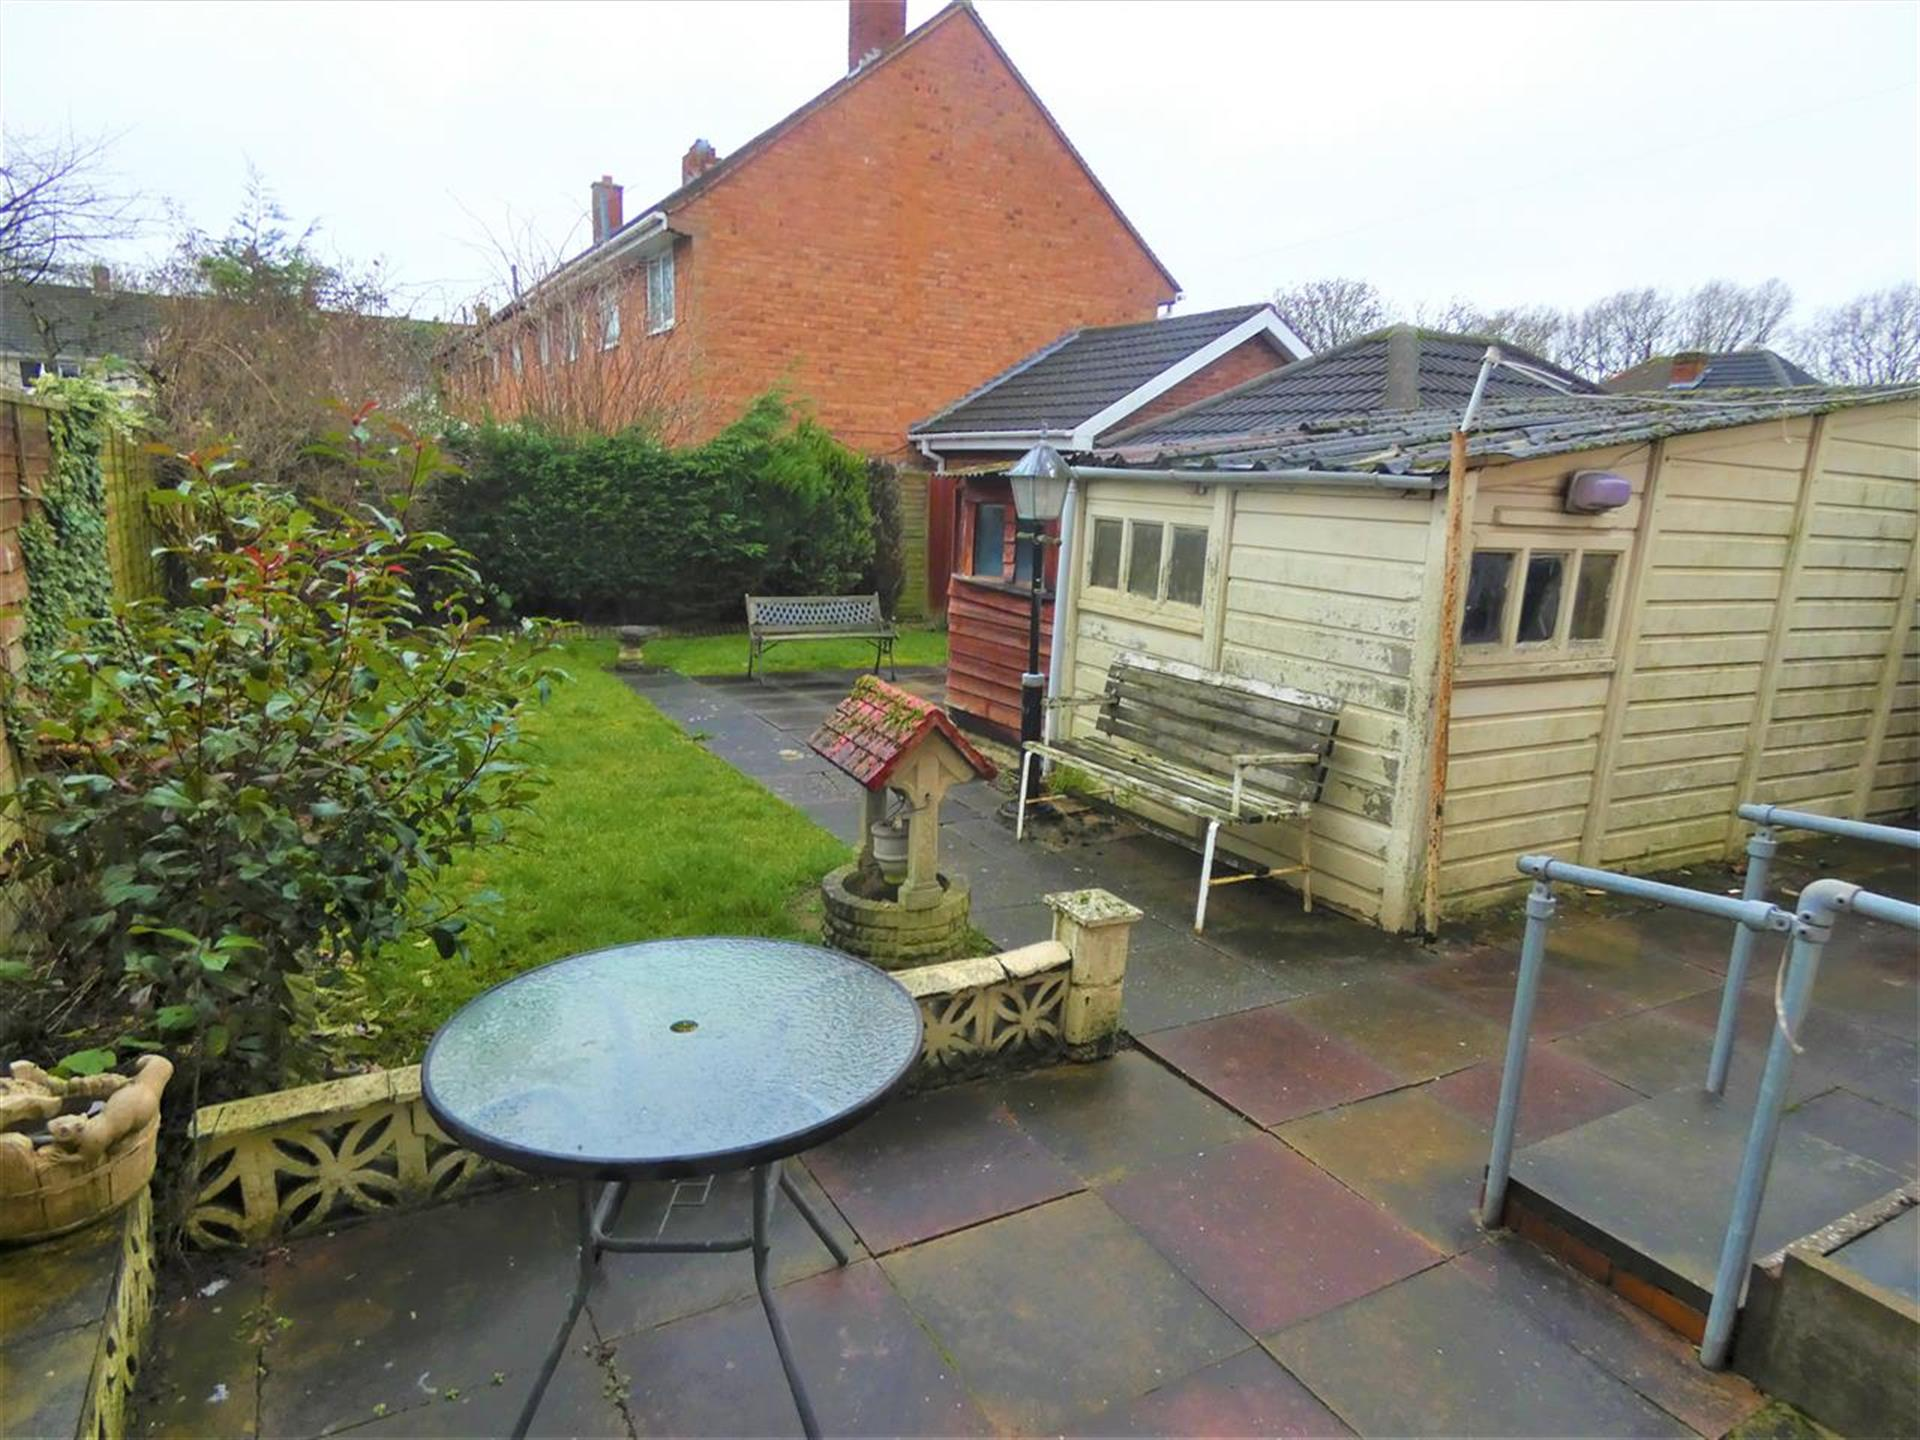 4 Bedroom End Terraced House For Sale - Gardens